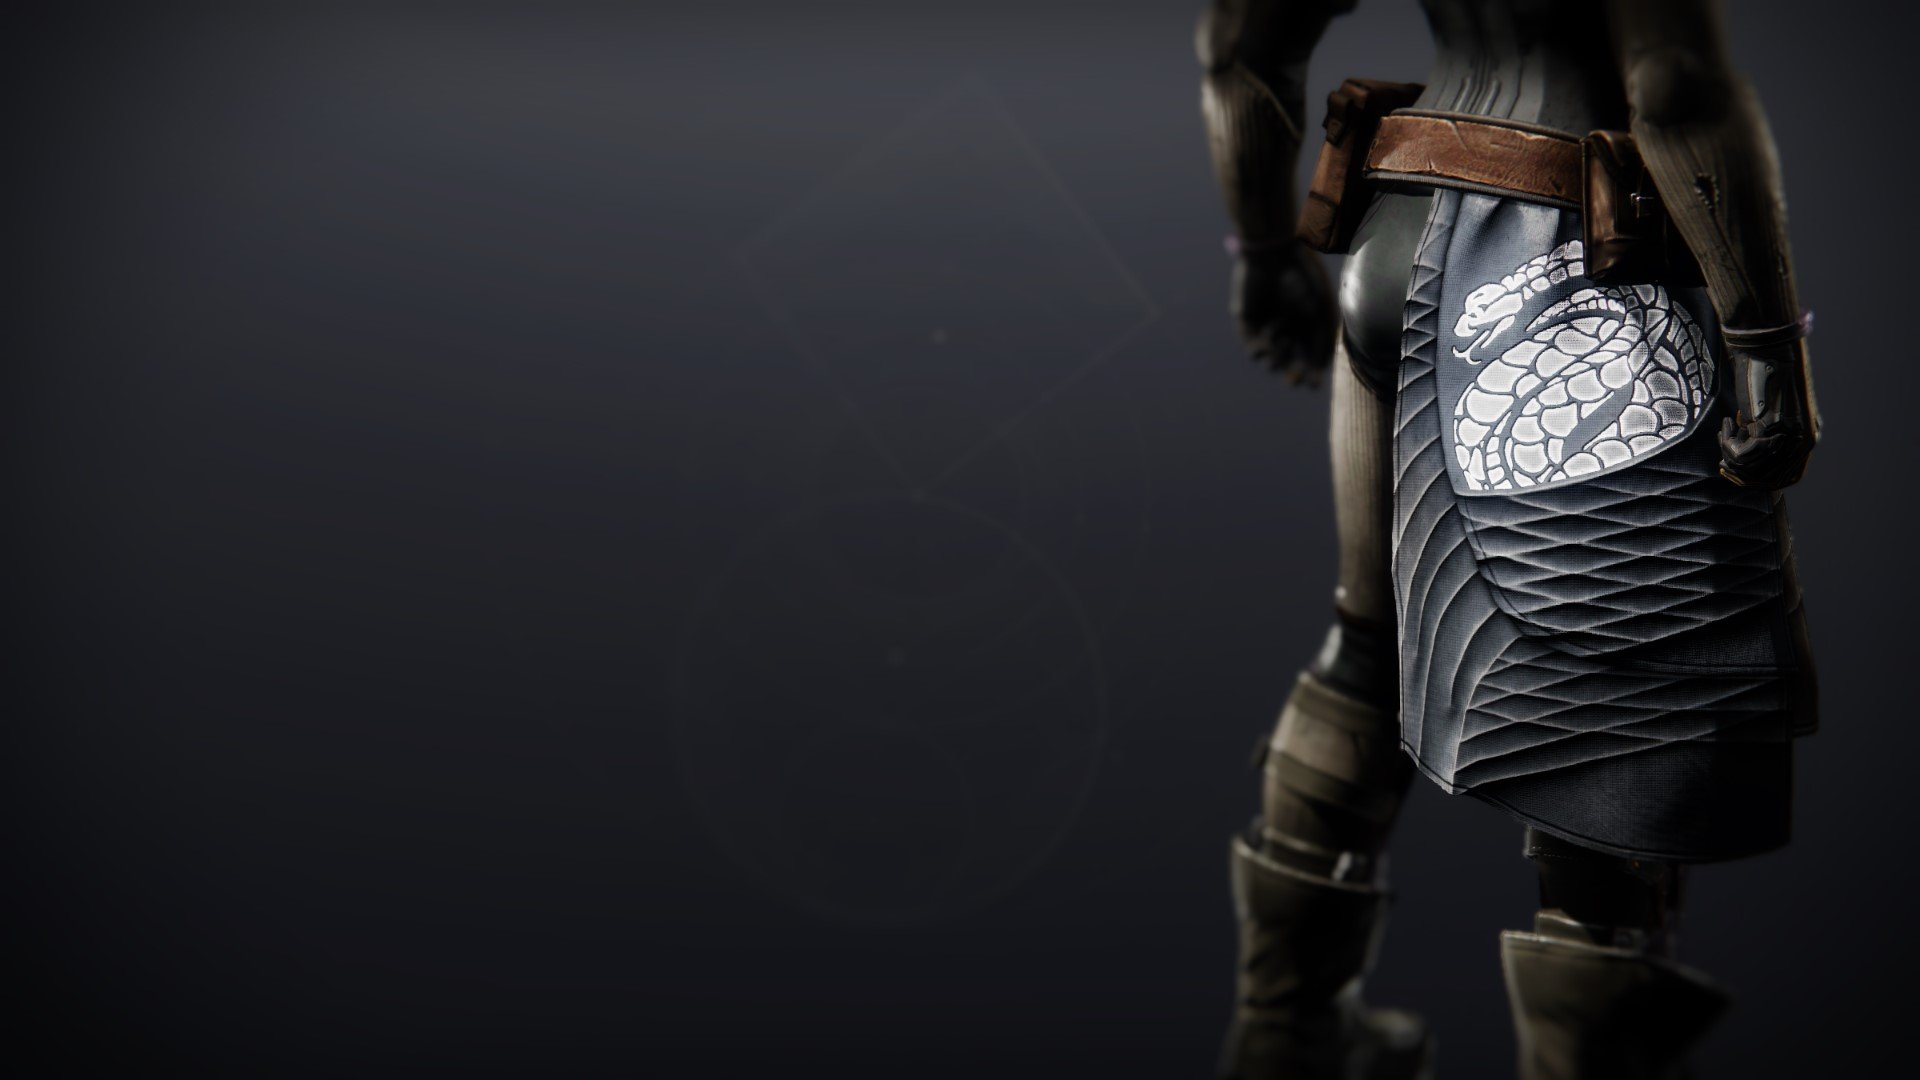 An in-game render of the Illicit Collector Mark.